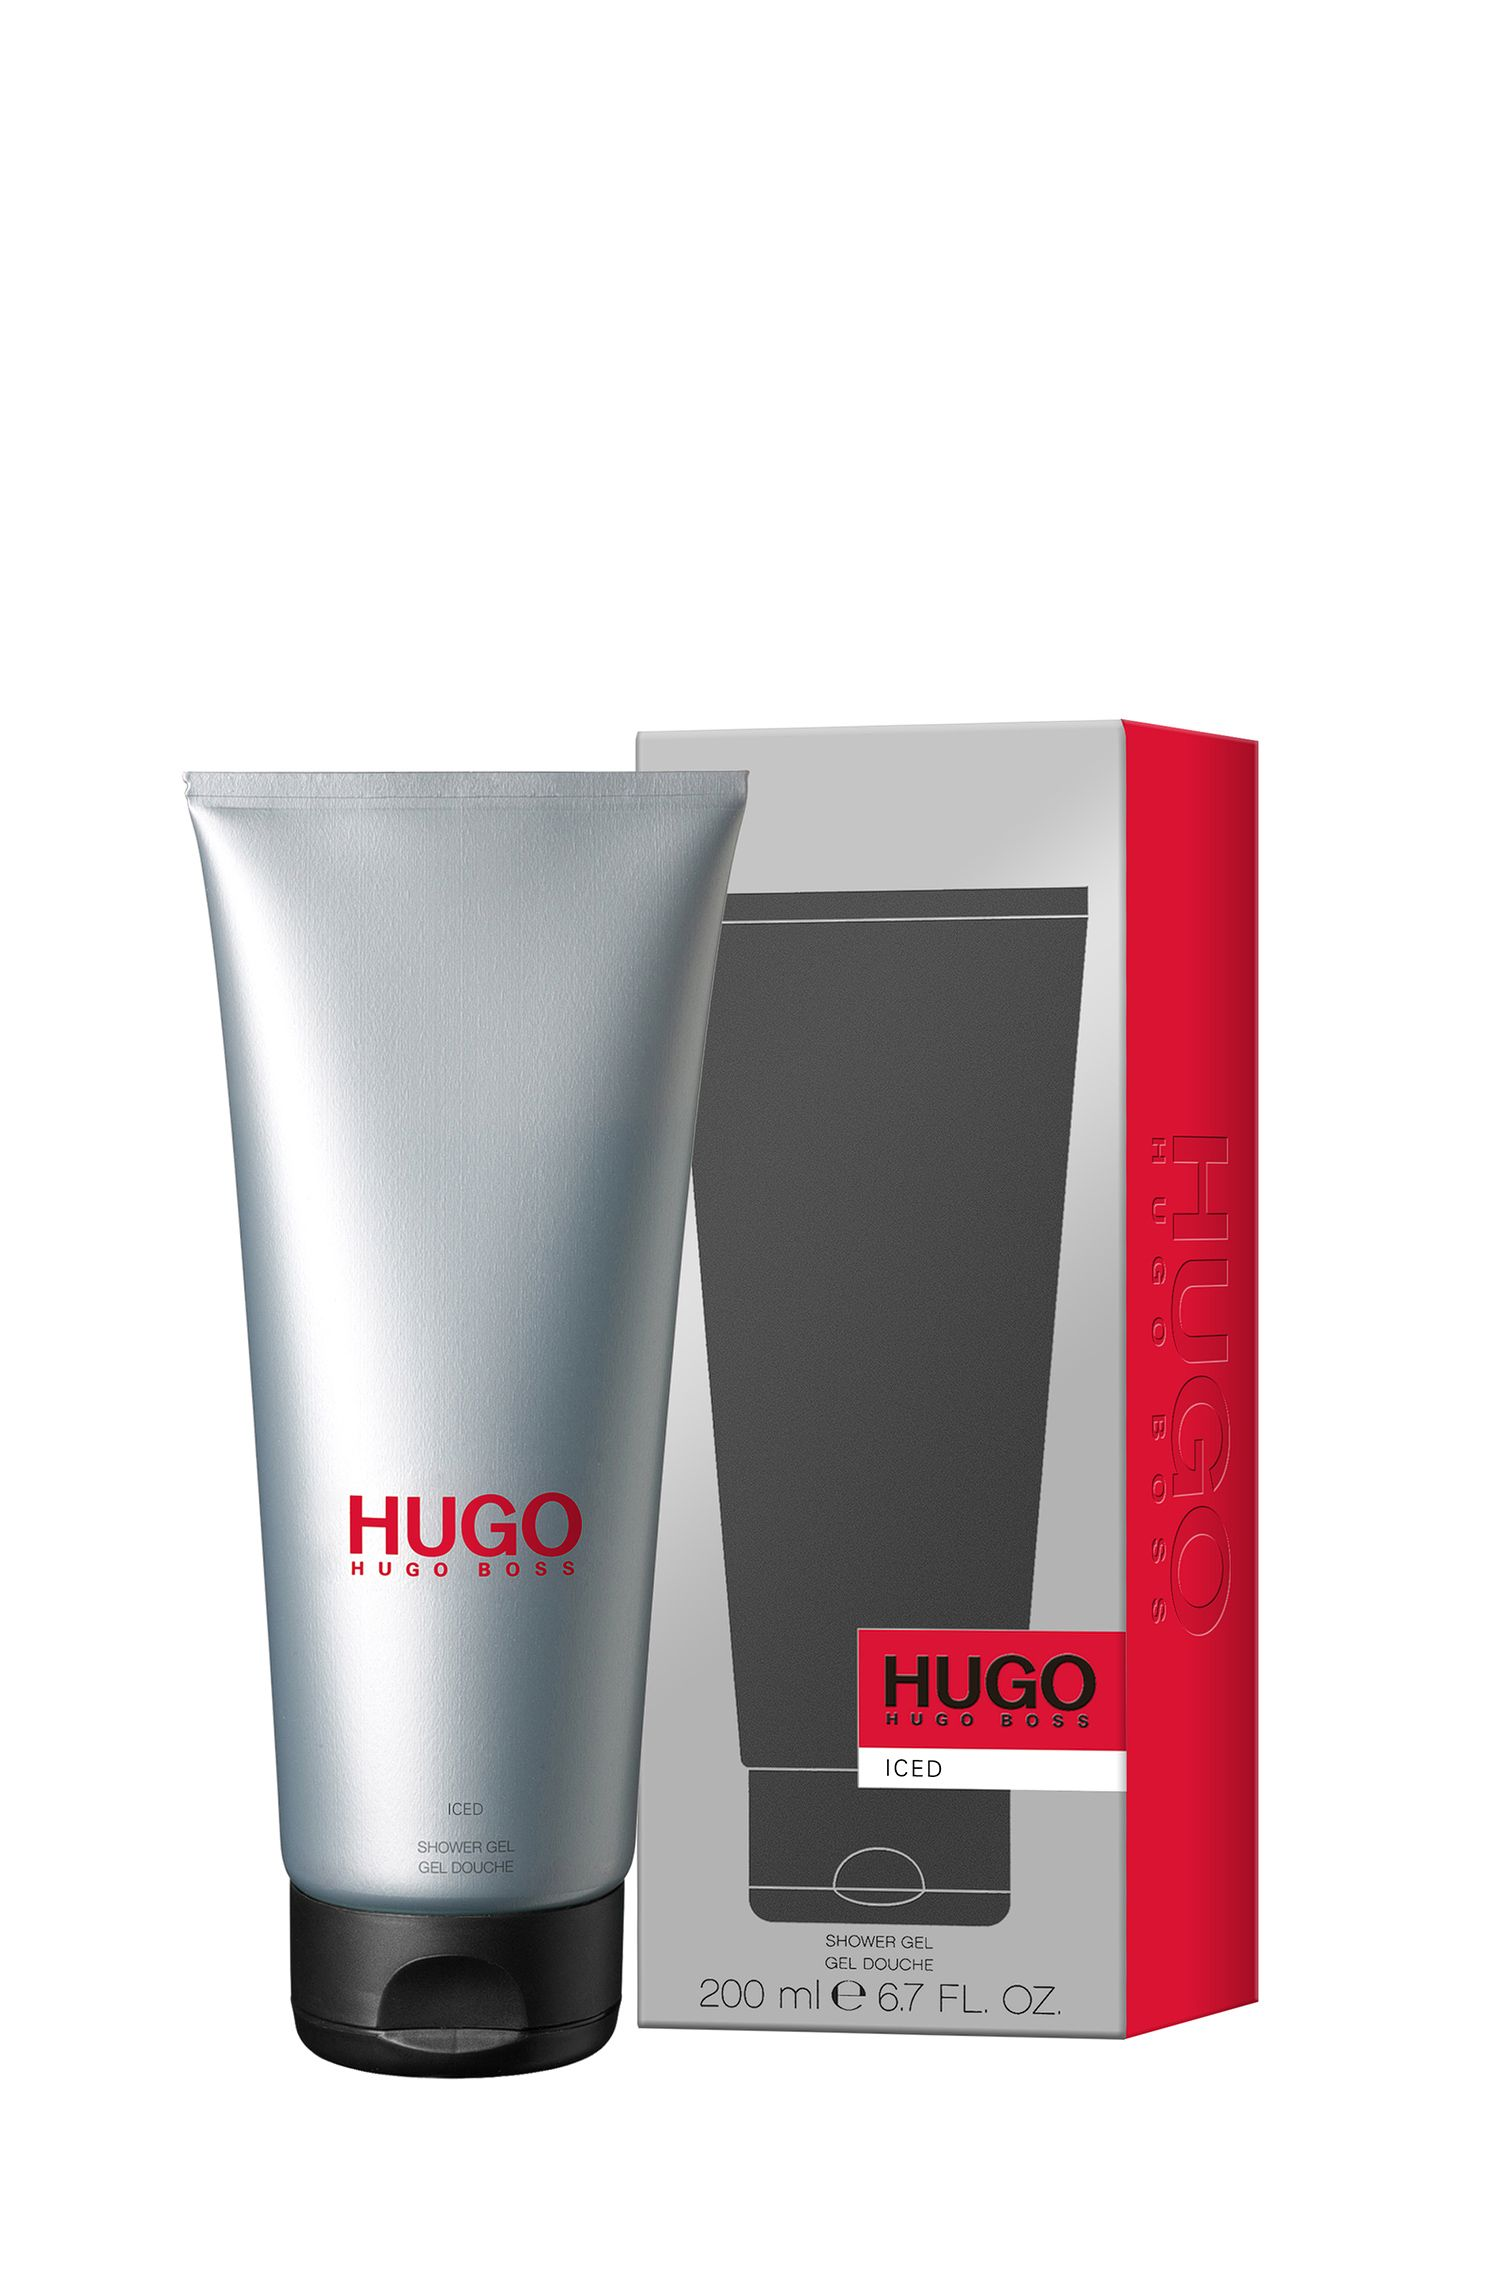 HUGO Iced gel doccia da 200 ml